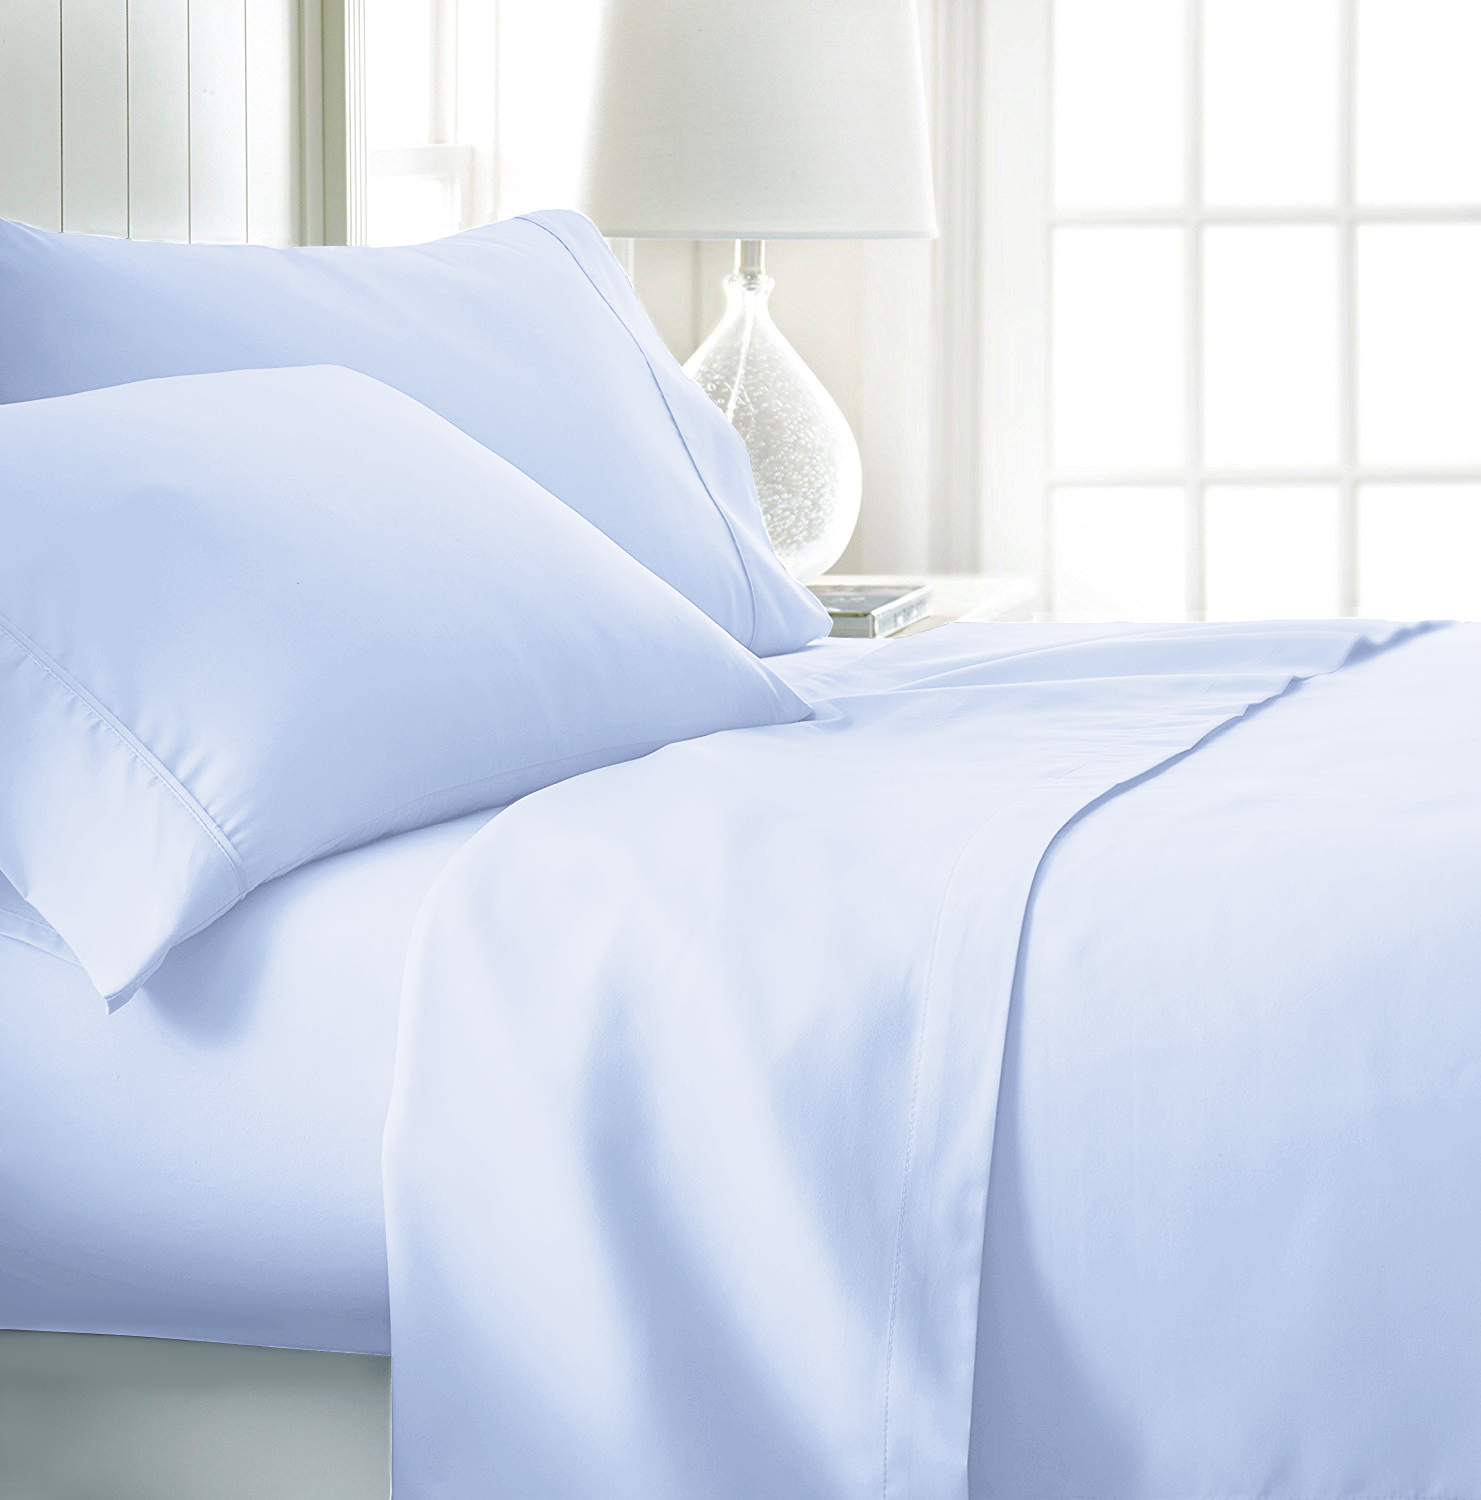 Modern Home Microfiber Bed Sheet Set, 110 GSM (3 or 4-Piece)